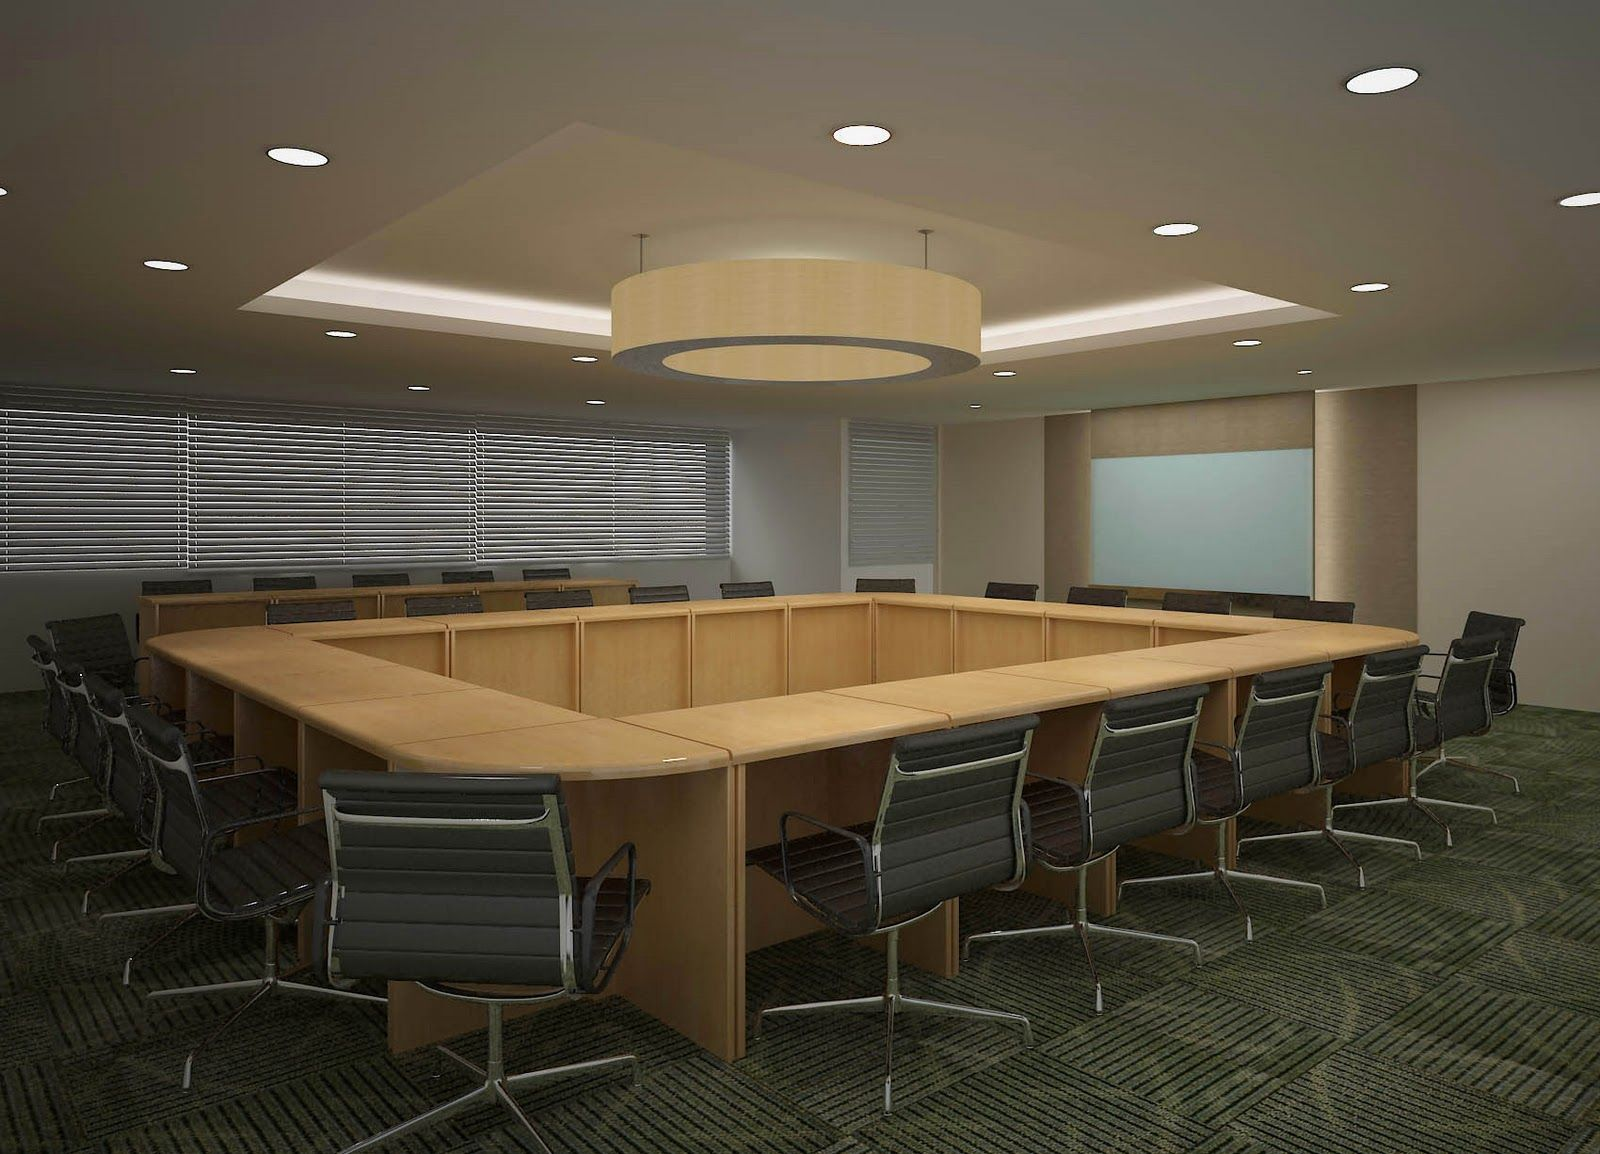 elegant office conference room design wooden wooden floor pinterest elegant business conference room ideas wooden bussines office